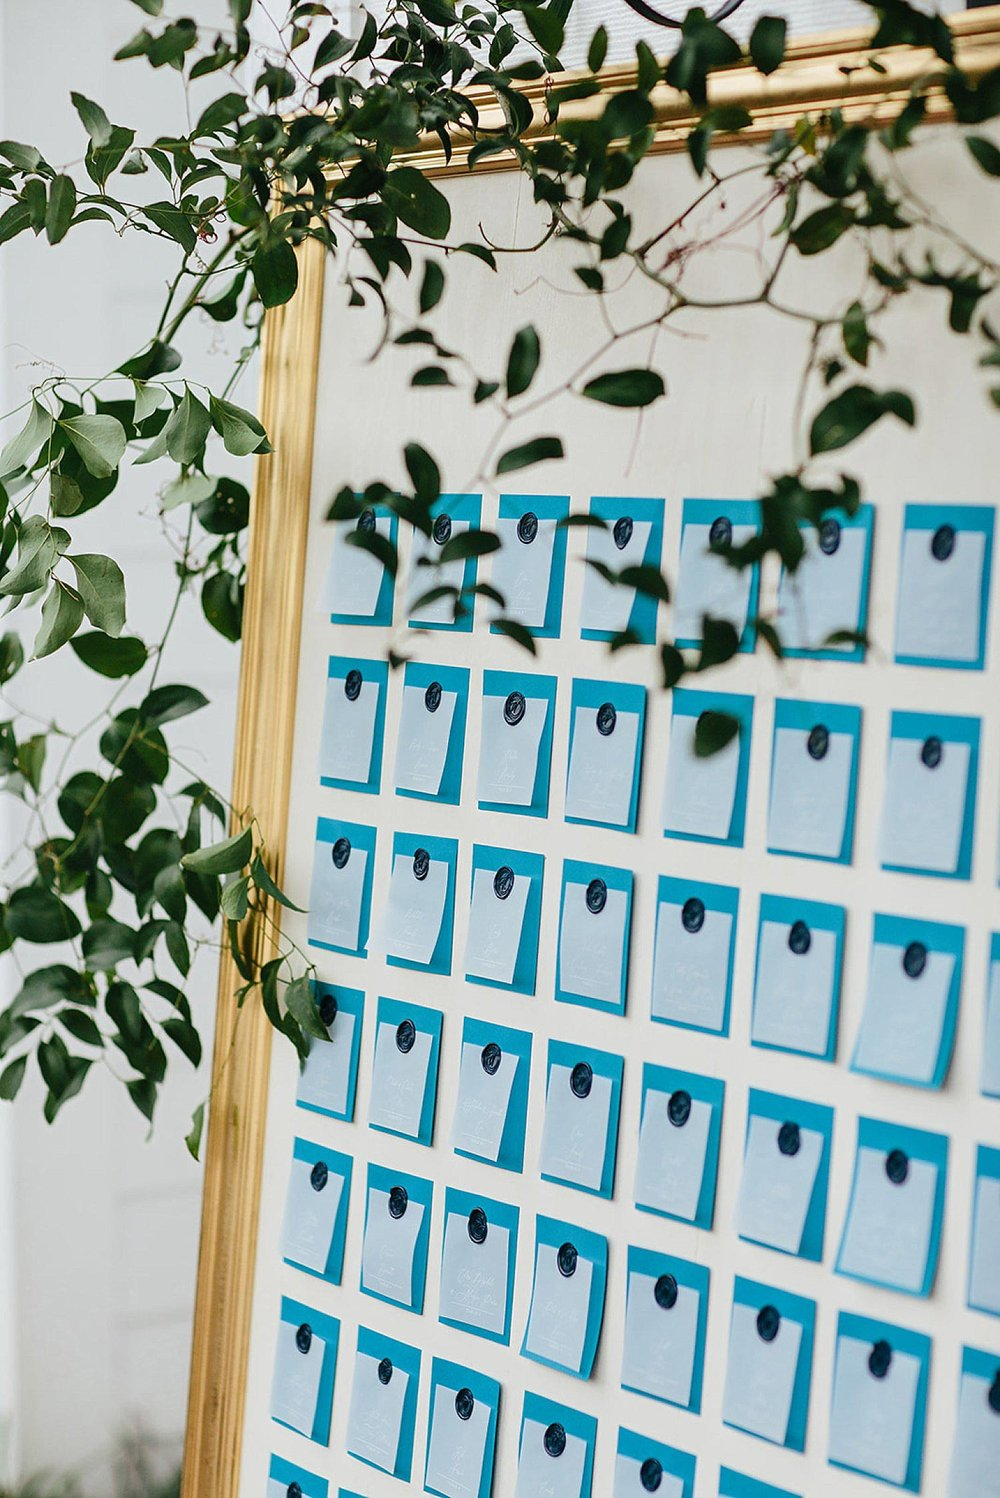 Navy wax seals and vellum paper seating chart